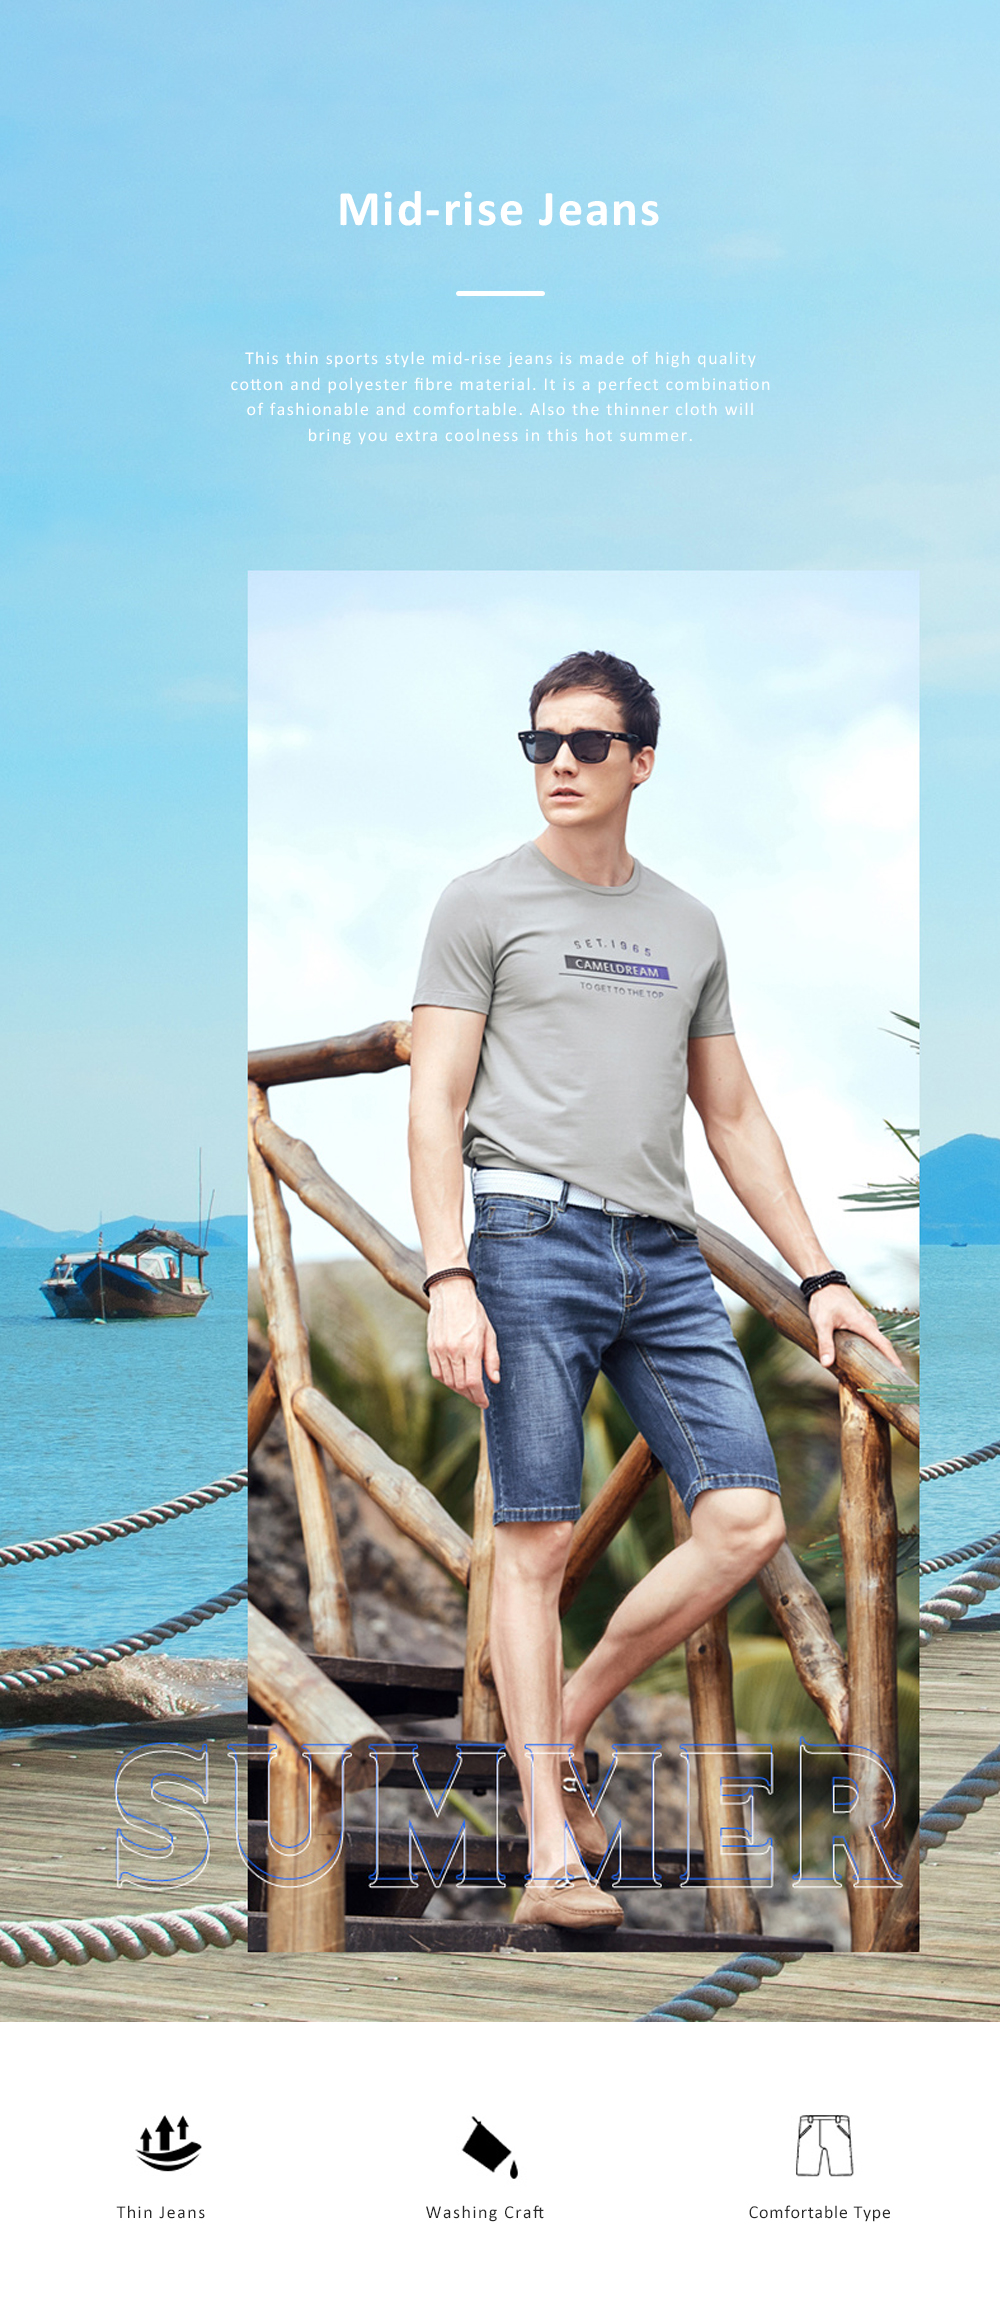 2019 New Leisure Style Loose Denim Shorts, Soft & Comfortable Thin Sports Mid-rise Jeans Pants 0